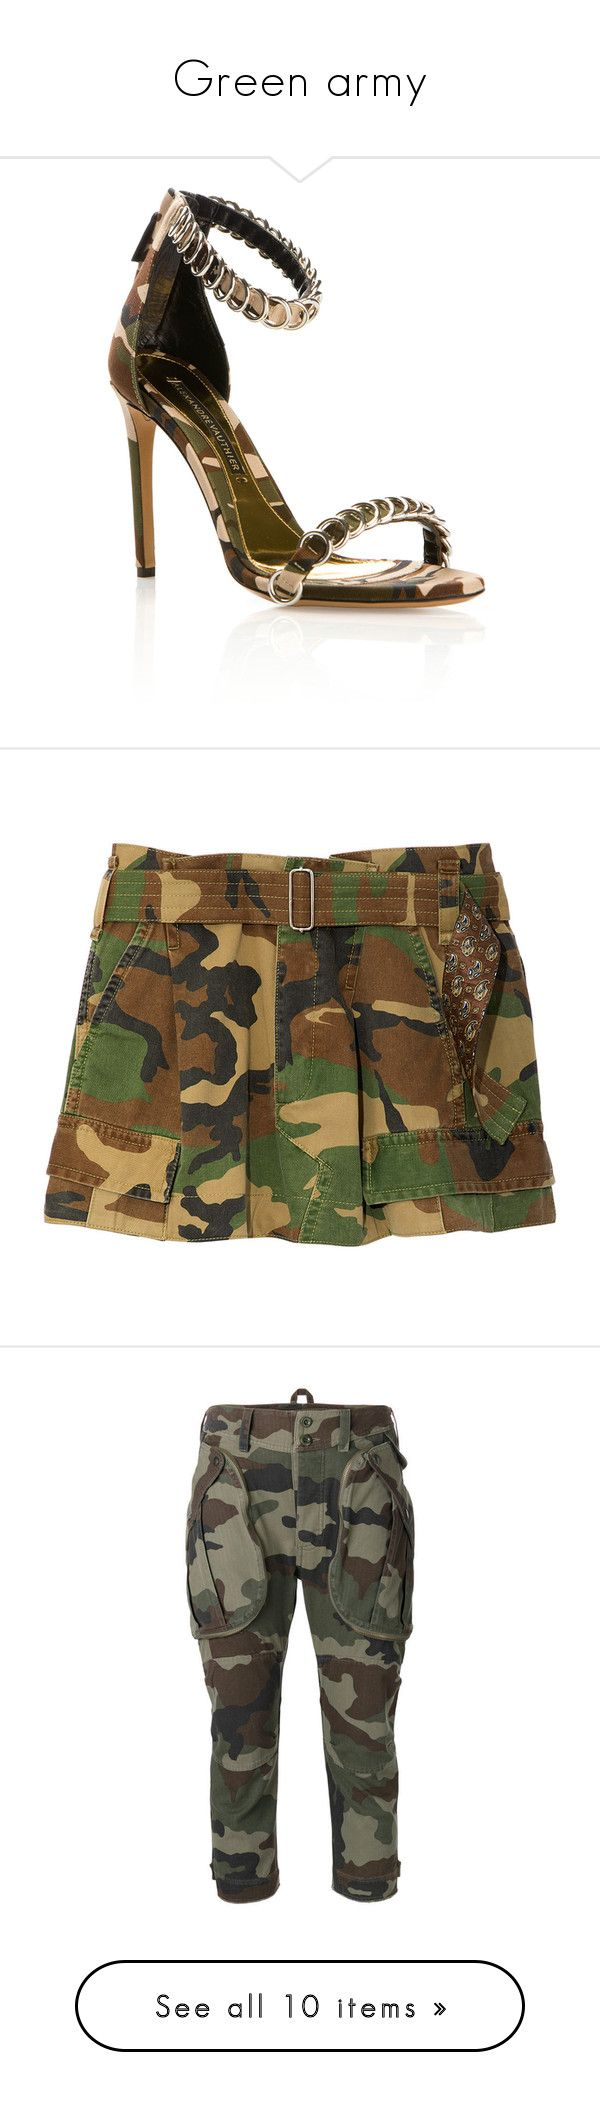 Green army by georginalan on Polyvore featuring polyvore, women's fashion, shoes, sandals, heels, sandales, alexandre vauthier, camouflage footwear, canvas sandals, camo print shoes, zip back sandals, clothing, shorts, bottoms, military green multi, olive shorts, army green cargo shorts, army shorts, camouflage shorts, army green shorts, pants, capris, green, green camo pants, camo trousers, camo pants, camoflage pants, camouflage pants, cropped capri pants, skinny leg cargo pants, cropped…